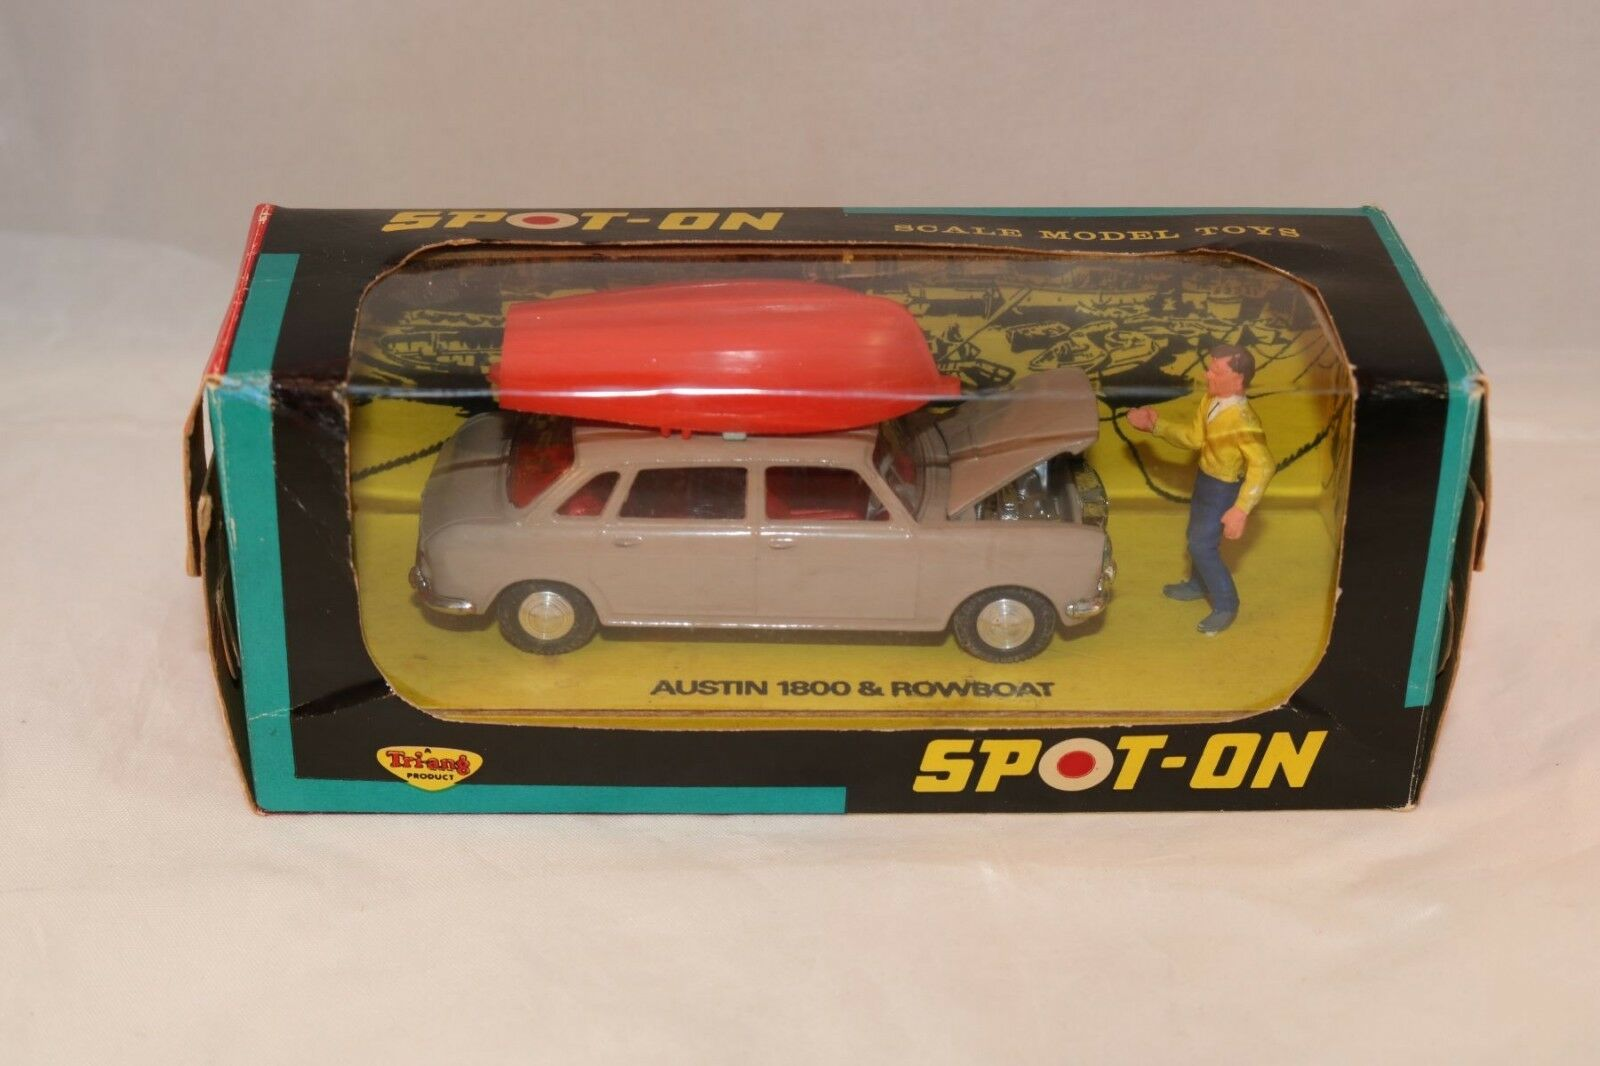 Spot-on Spoton 410 Austin 1800 & Rowboat perfect mint in box with figure